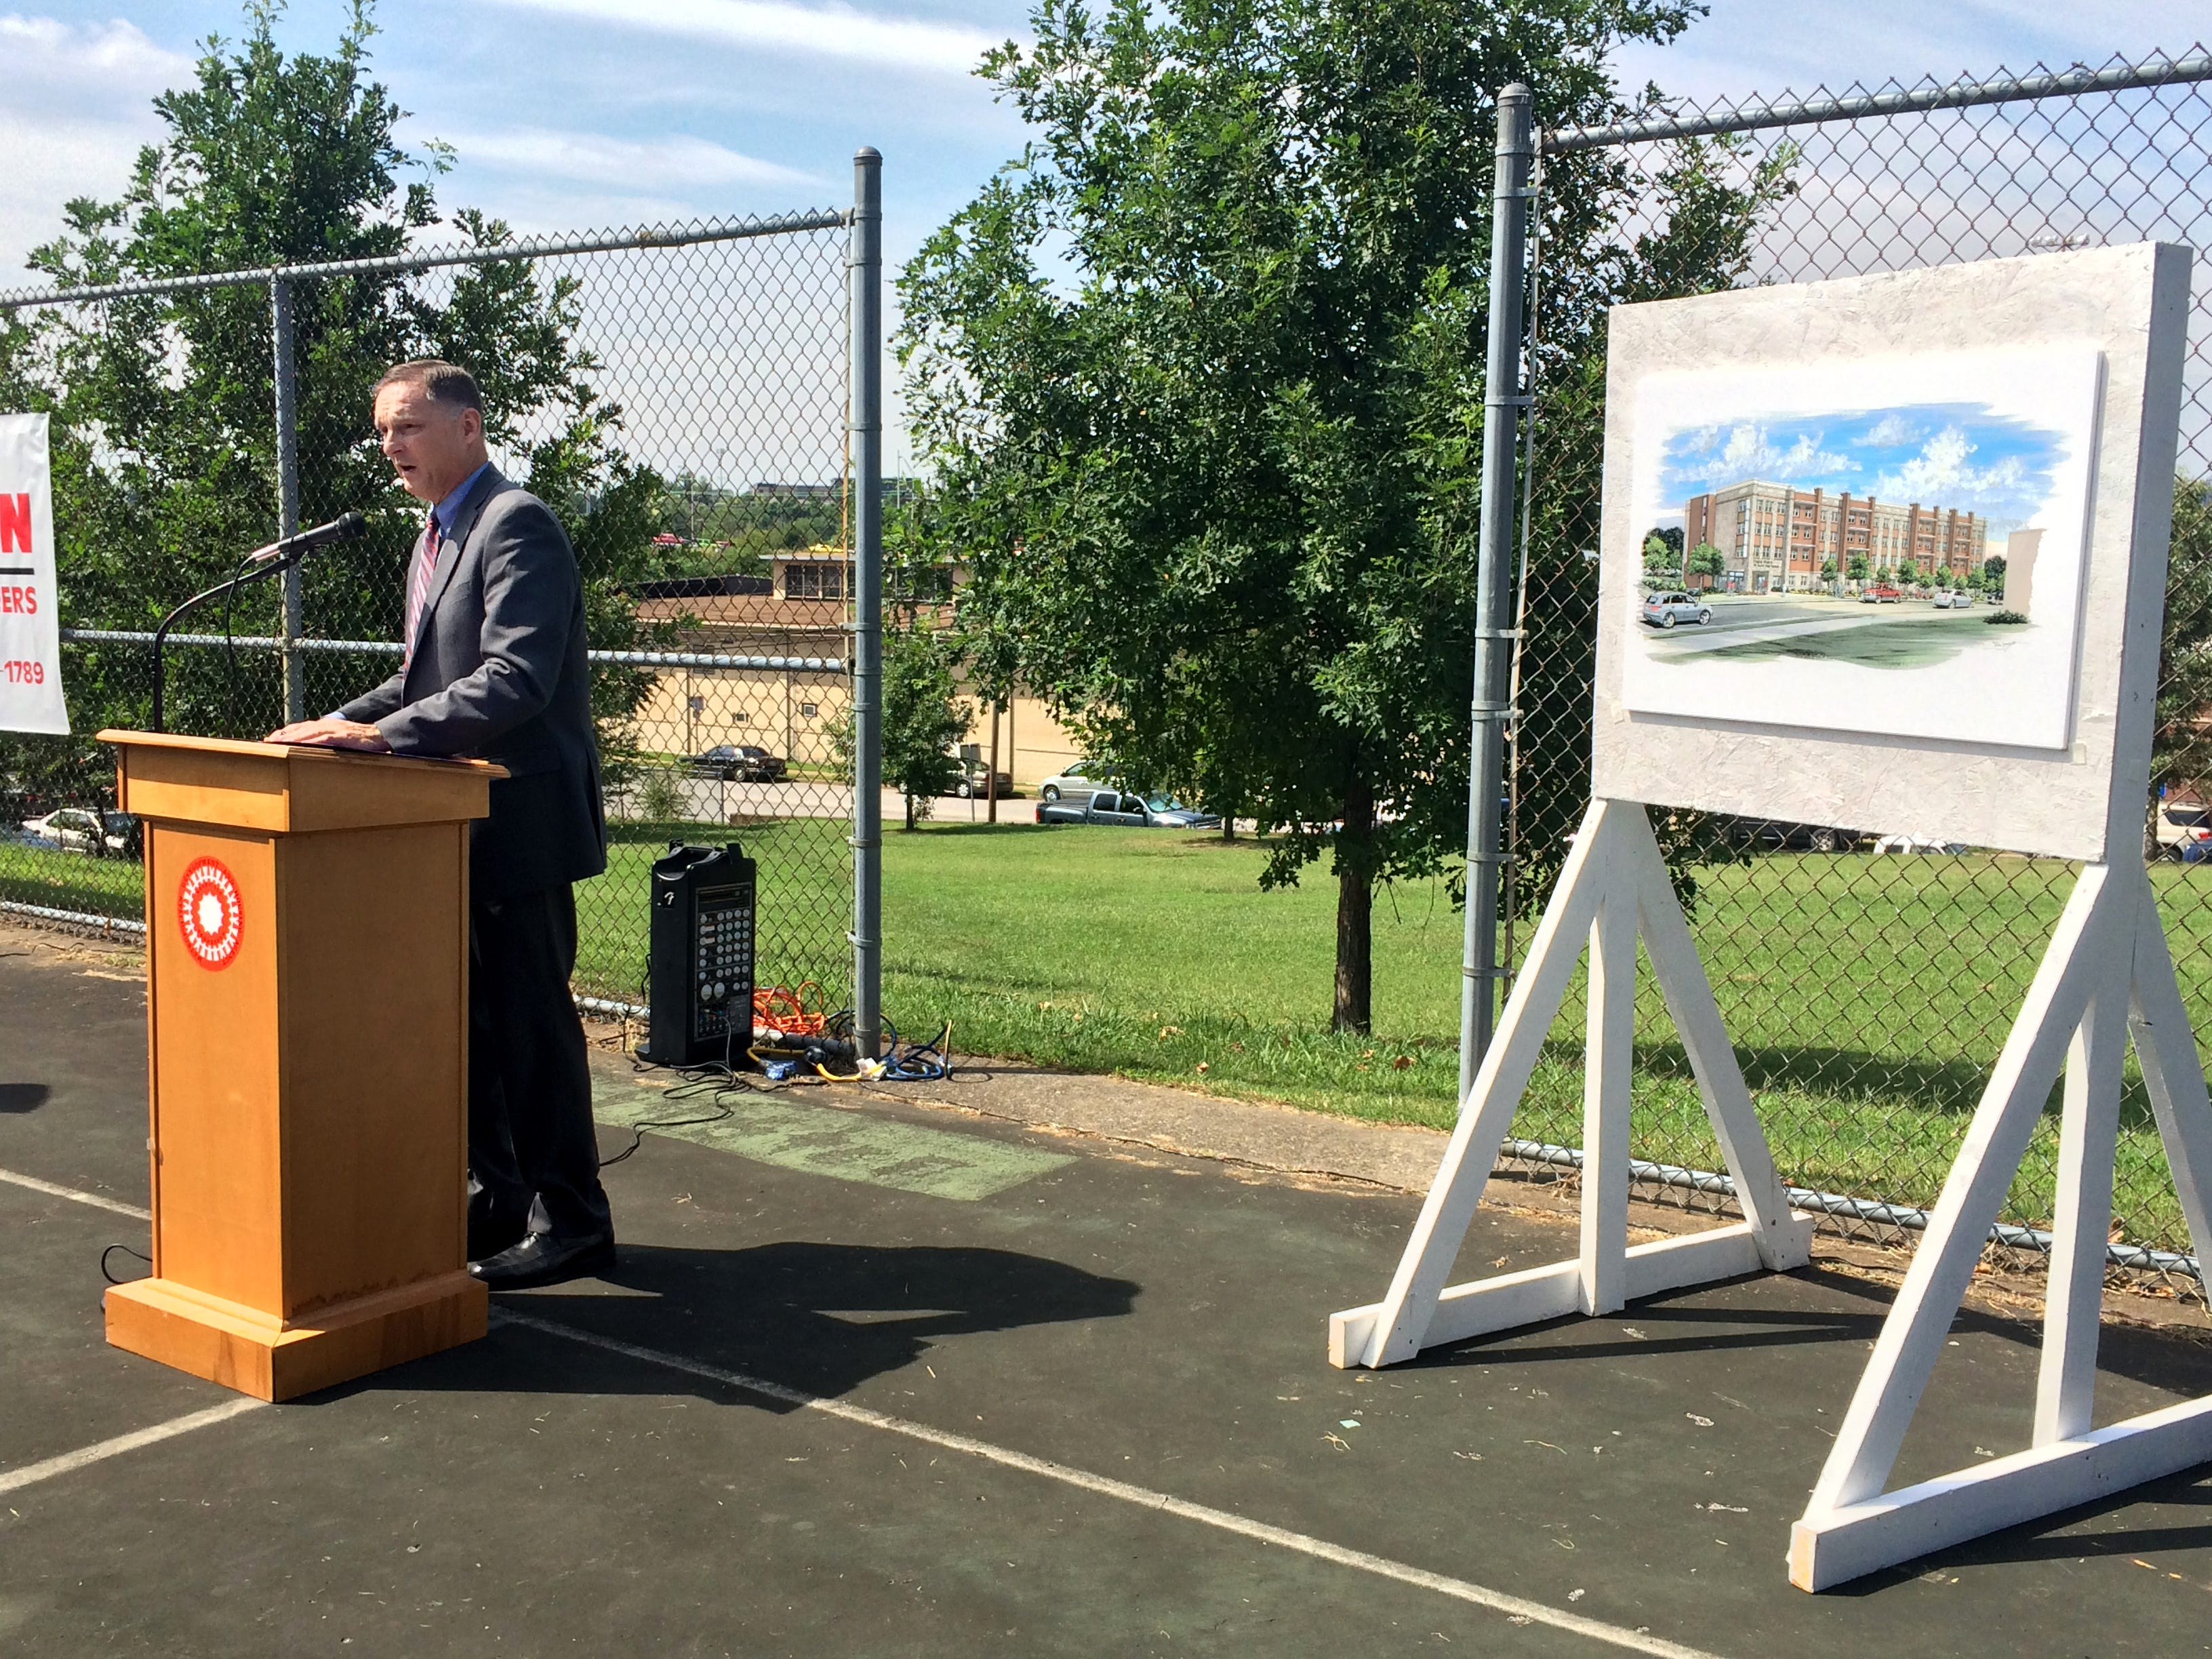 Jim Harbison, the executive director of the Metro Development and Housing Agency, speaks during the groundbreaking ceremony for Cayce Place Apartments on Aug. 22, 2015. The 68-unit building will be Davidson County's first new public housing in 18 years.